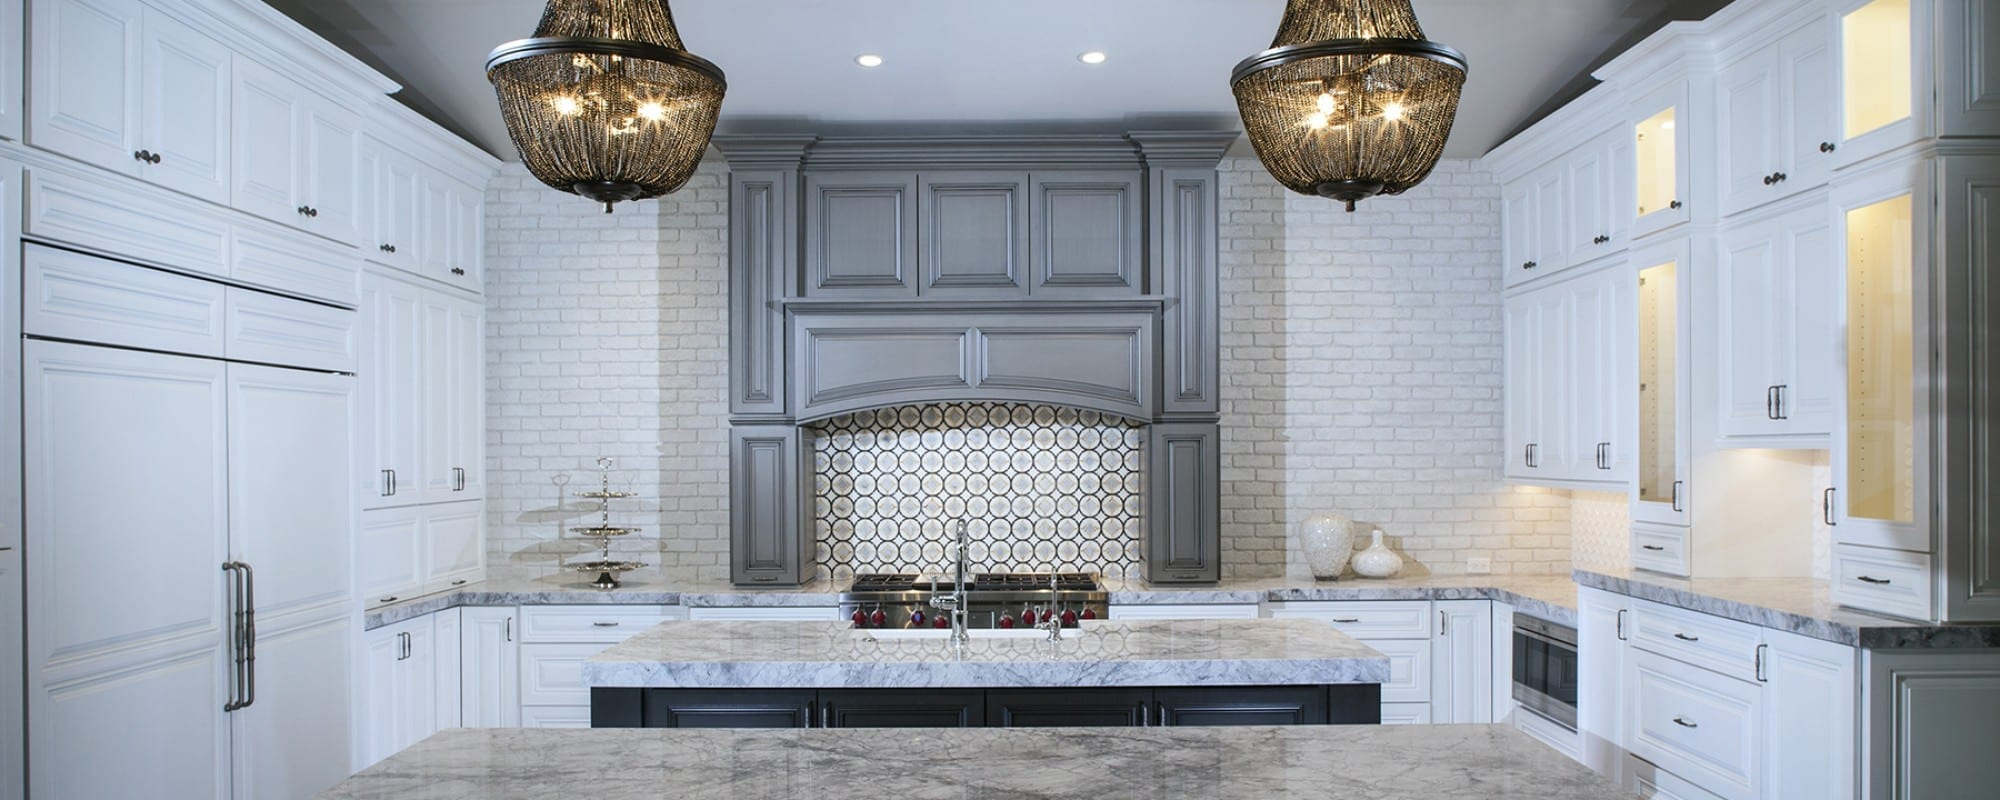 Woodcase Fine Cabinetry - kitchen